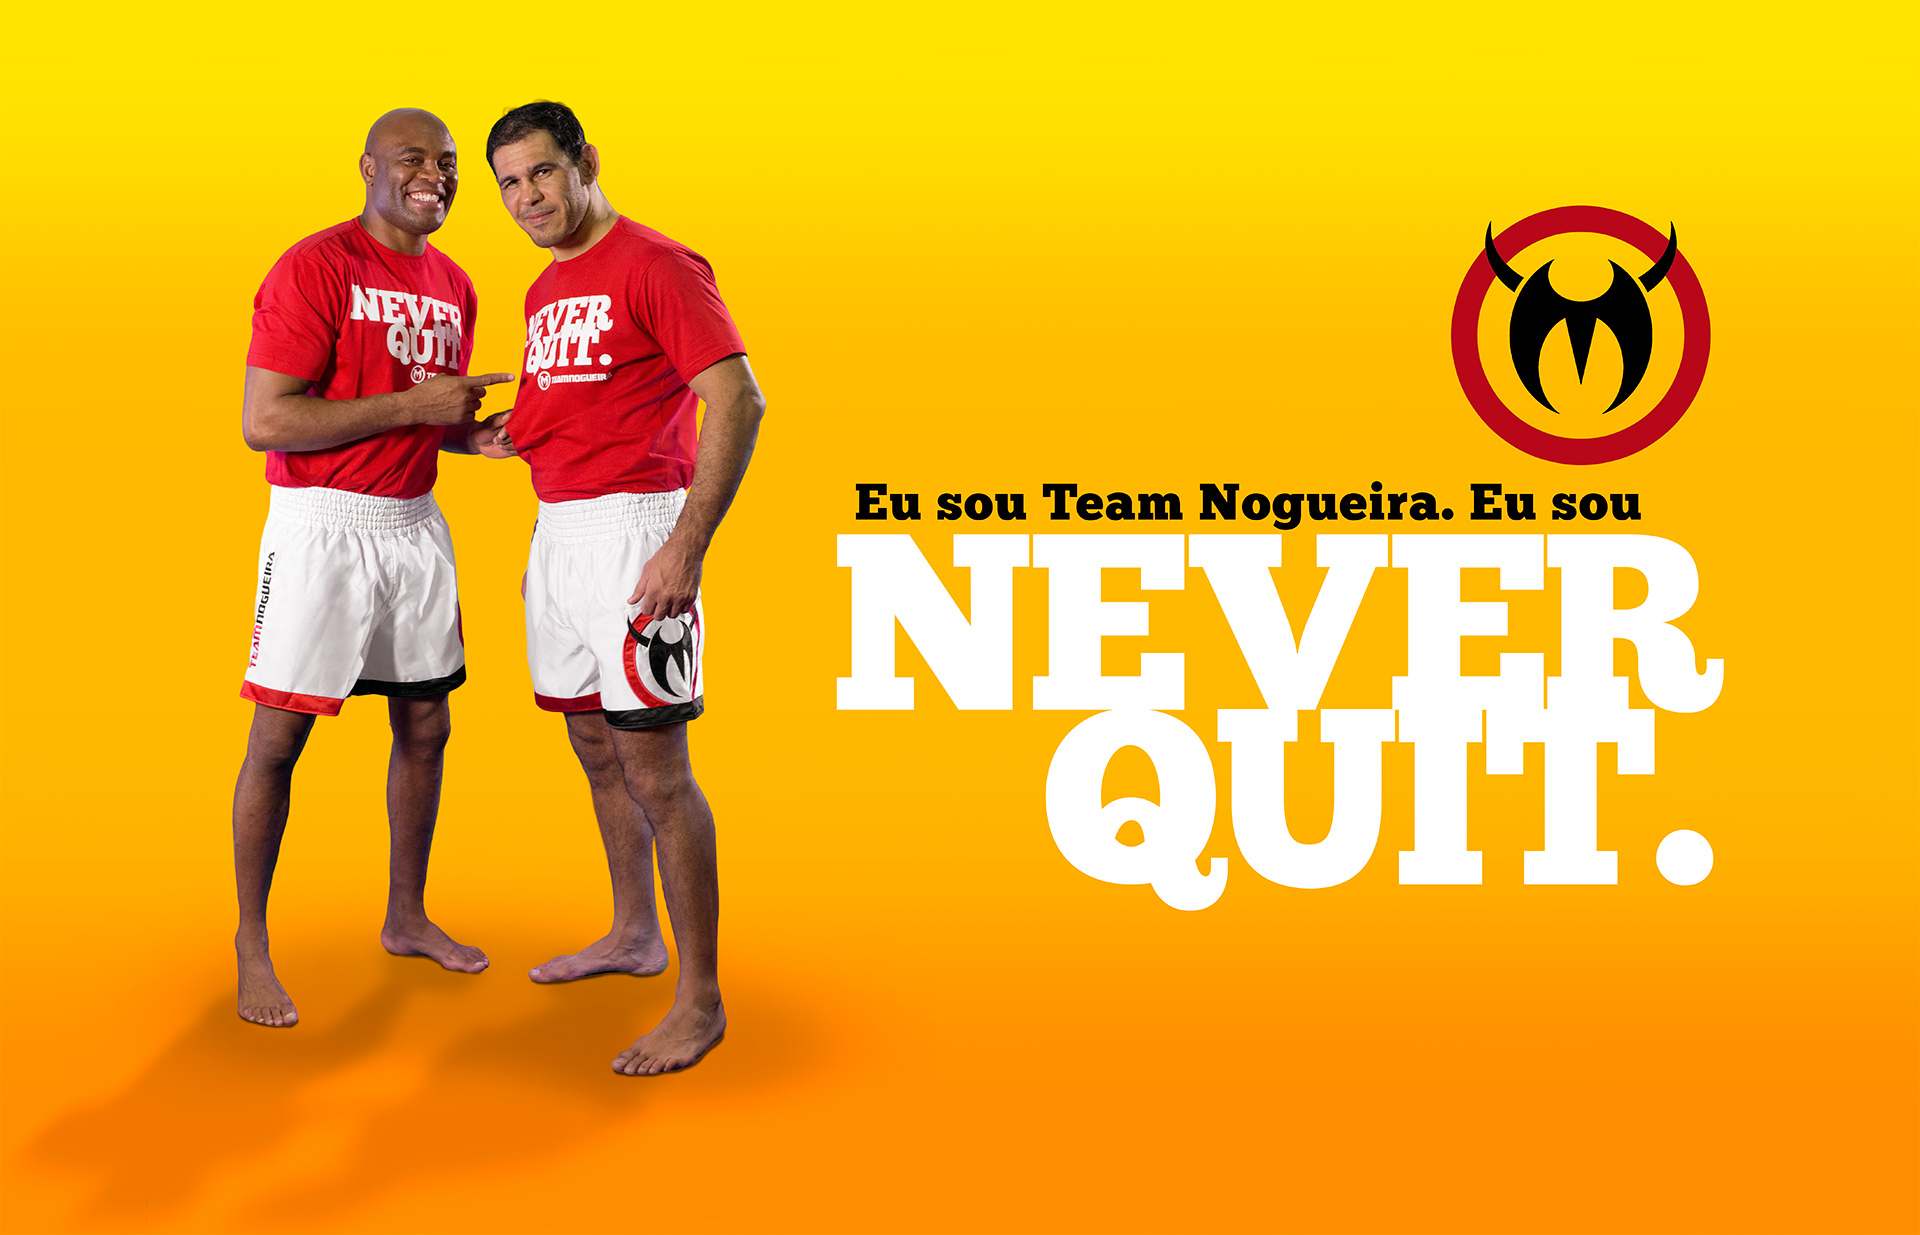 Team Nogueira - Never Quit